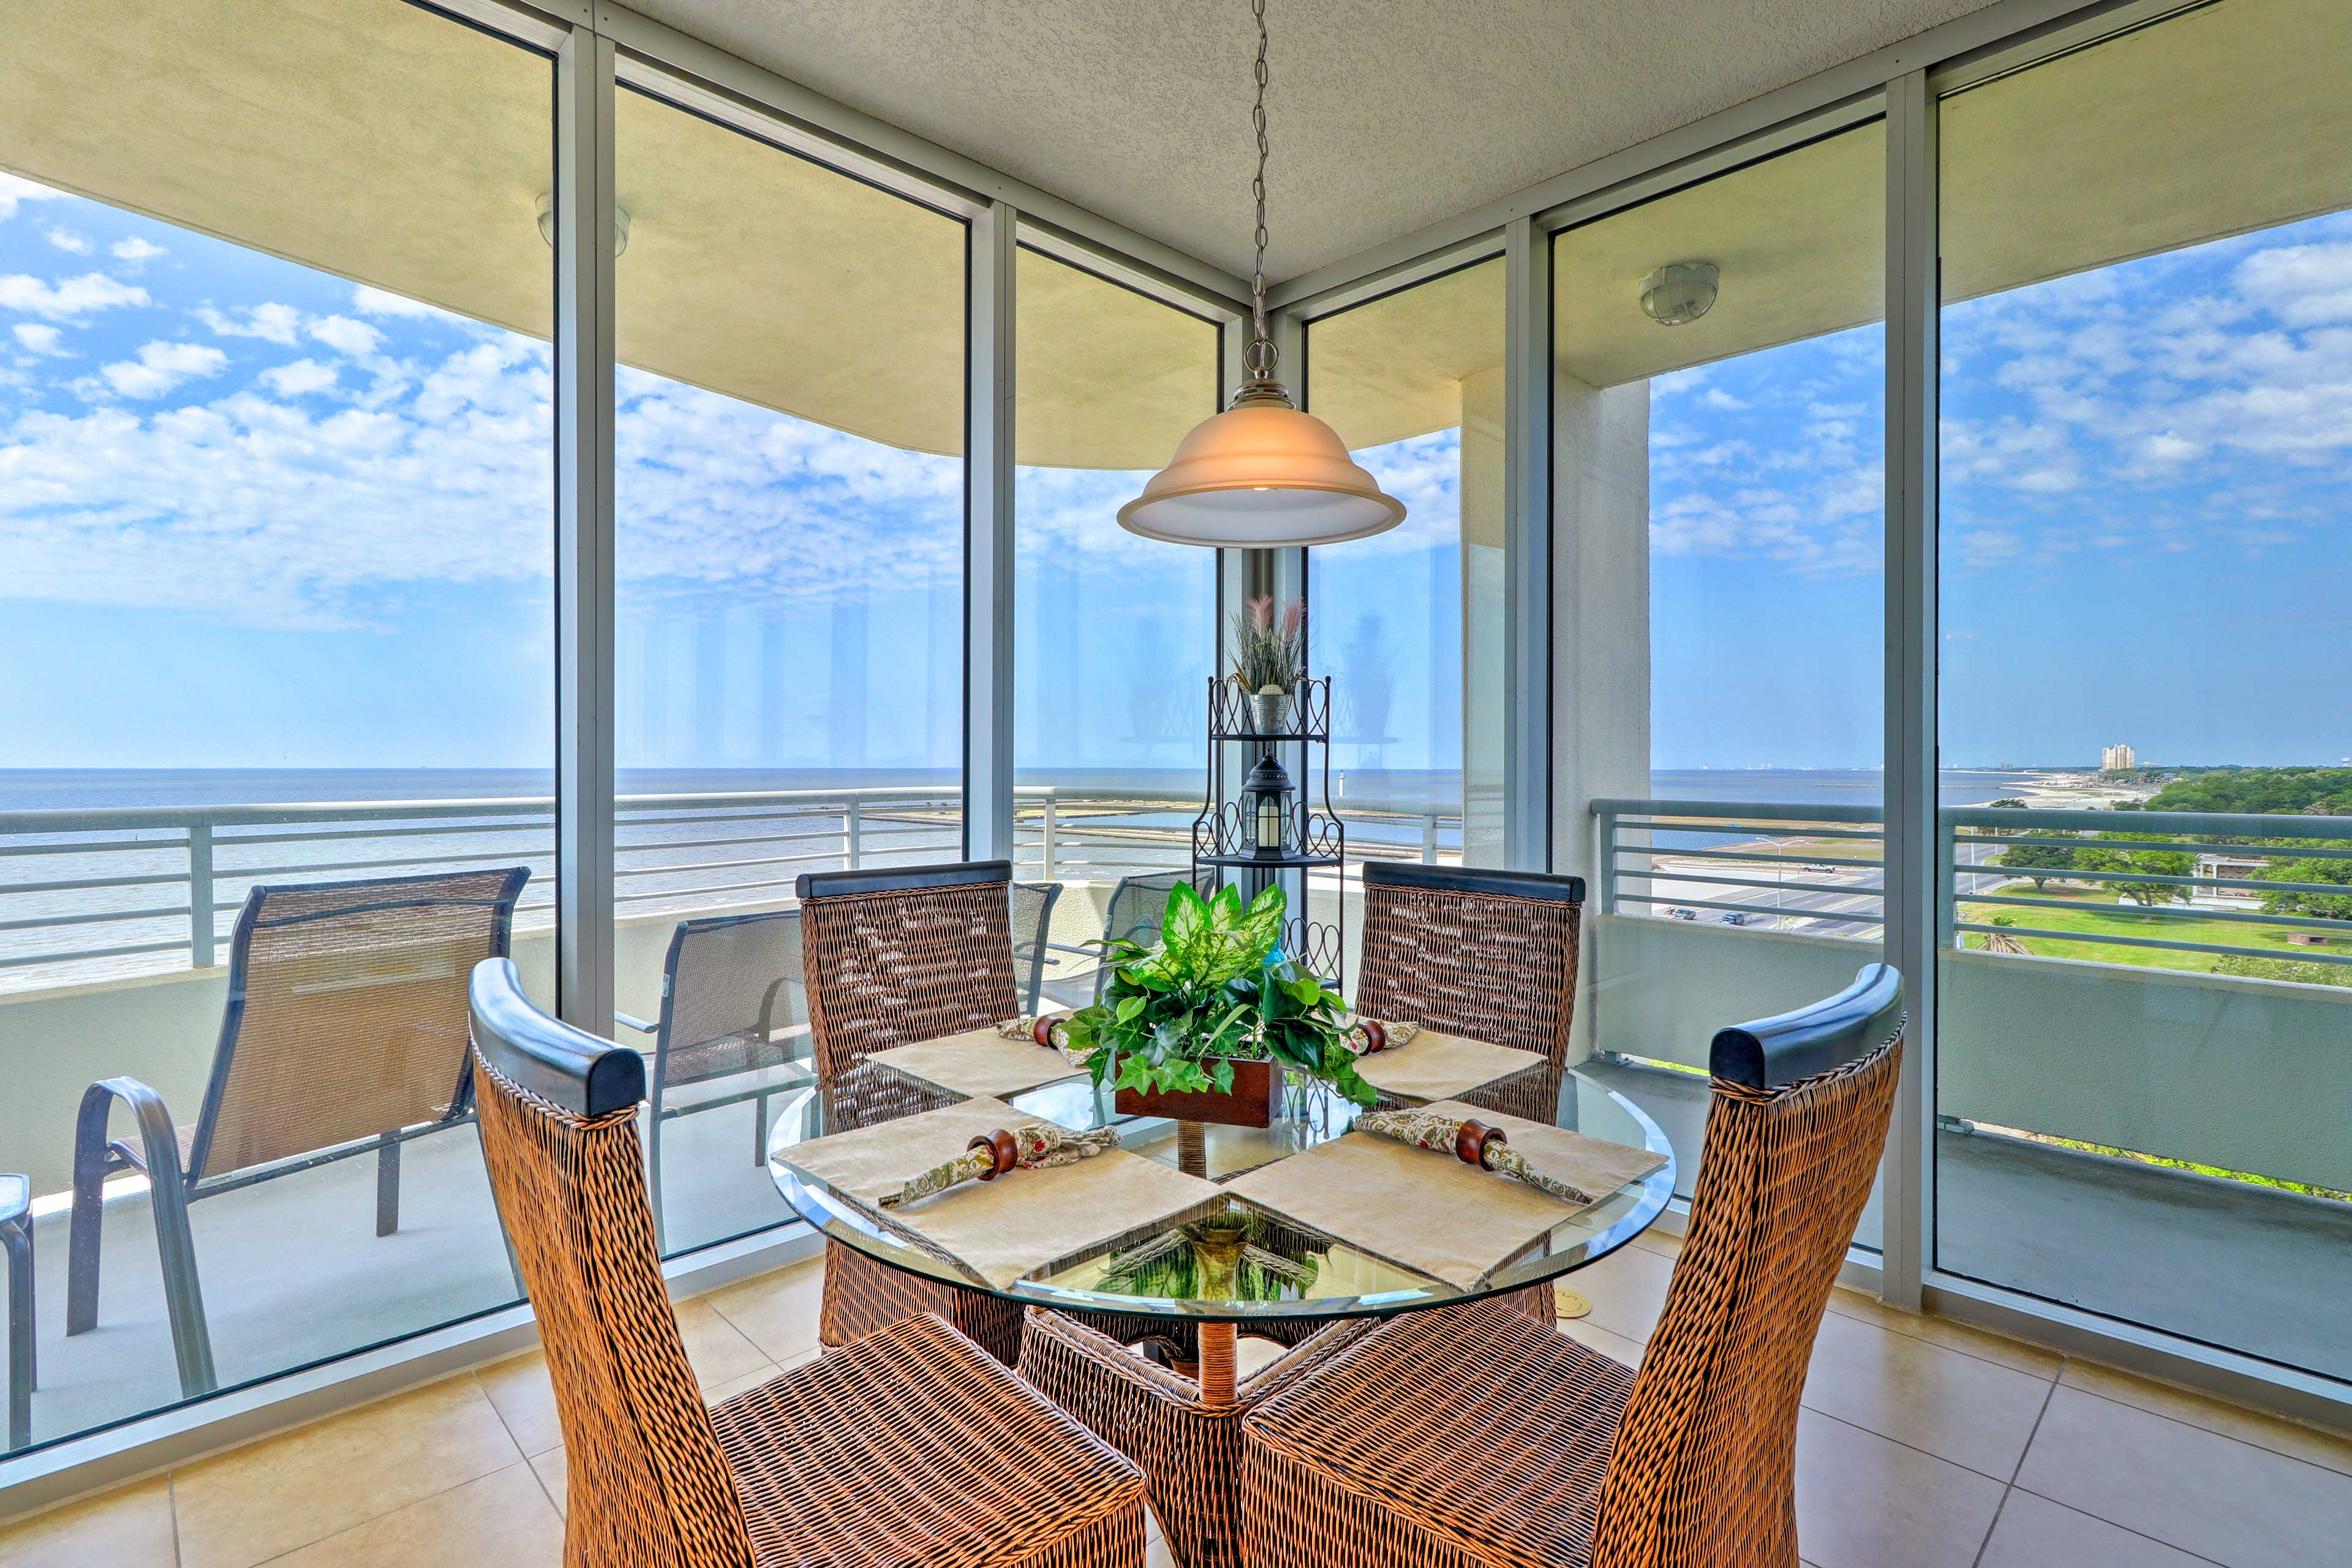 Dine with a view at this 4-person table.